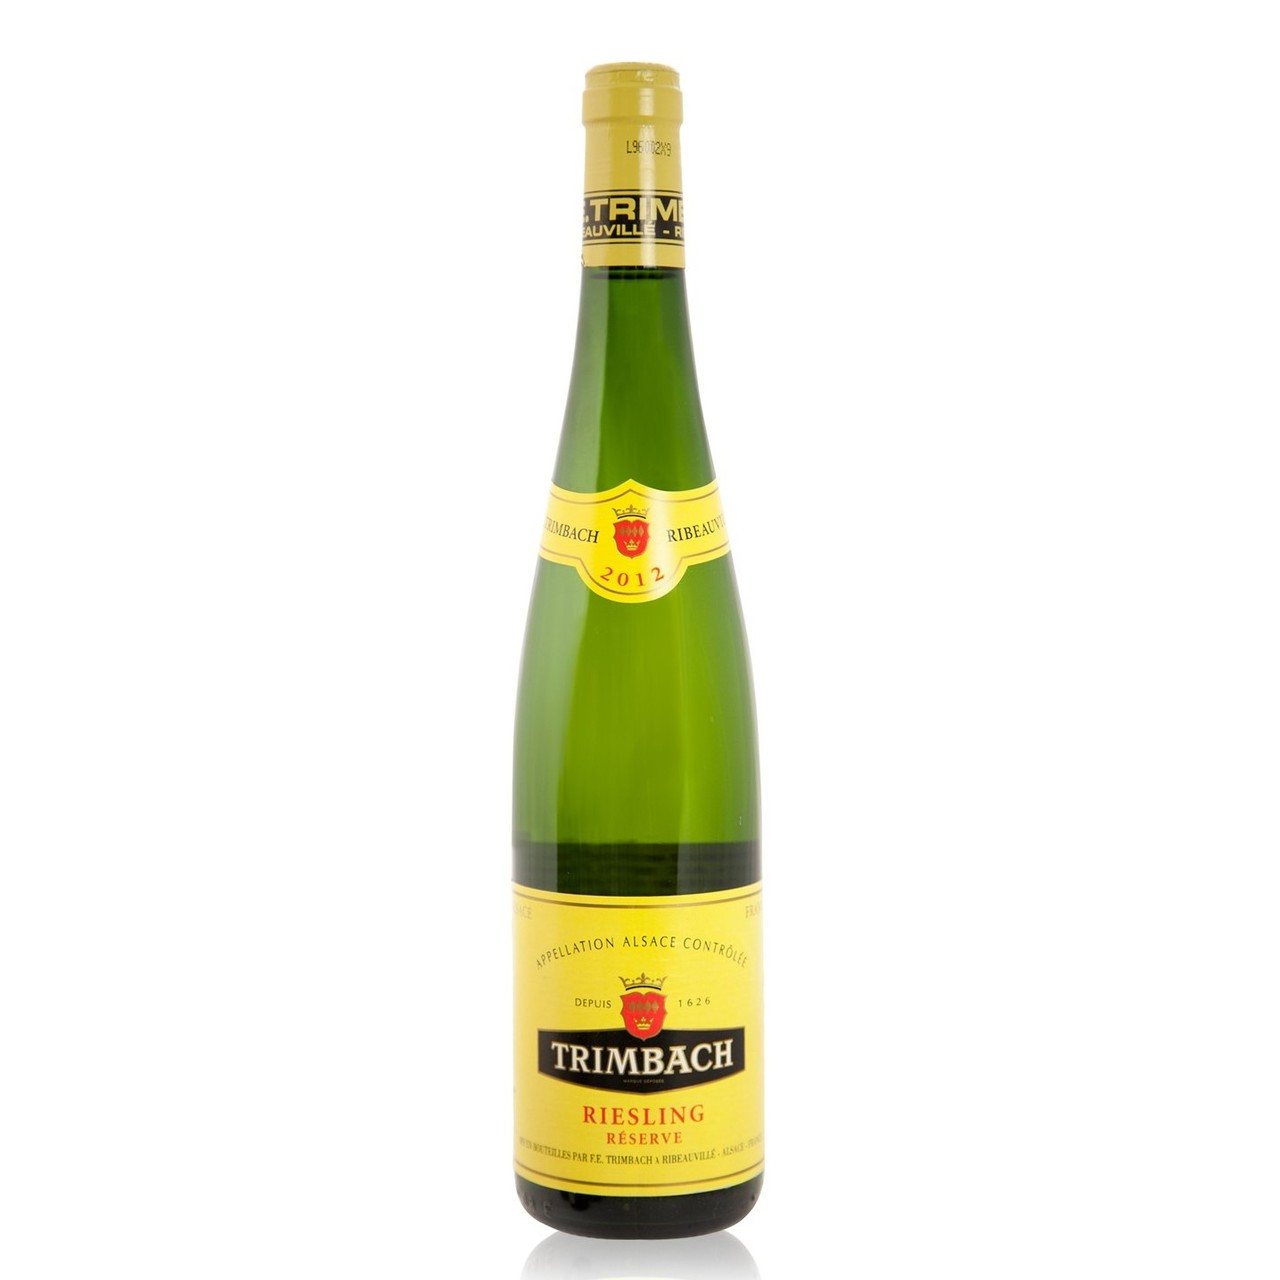 Trimbach, Riesling 2015